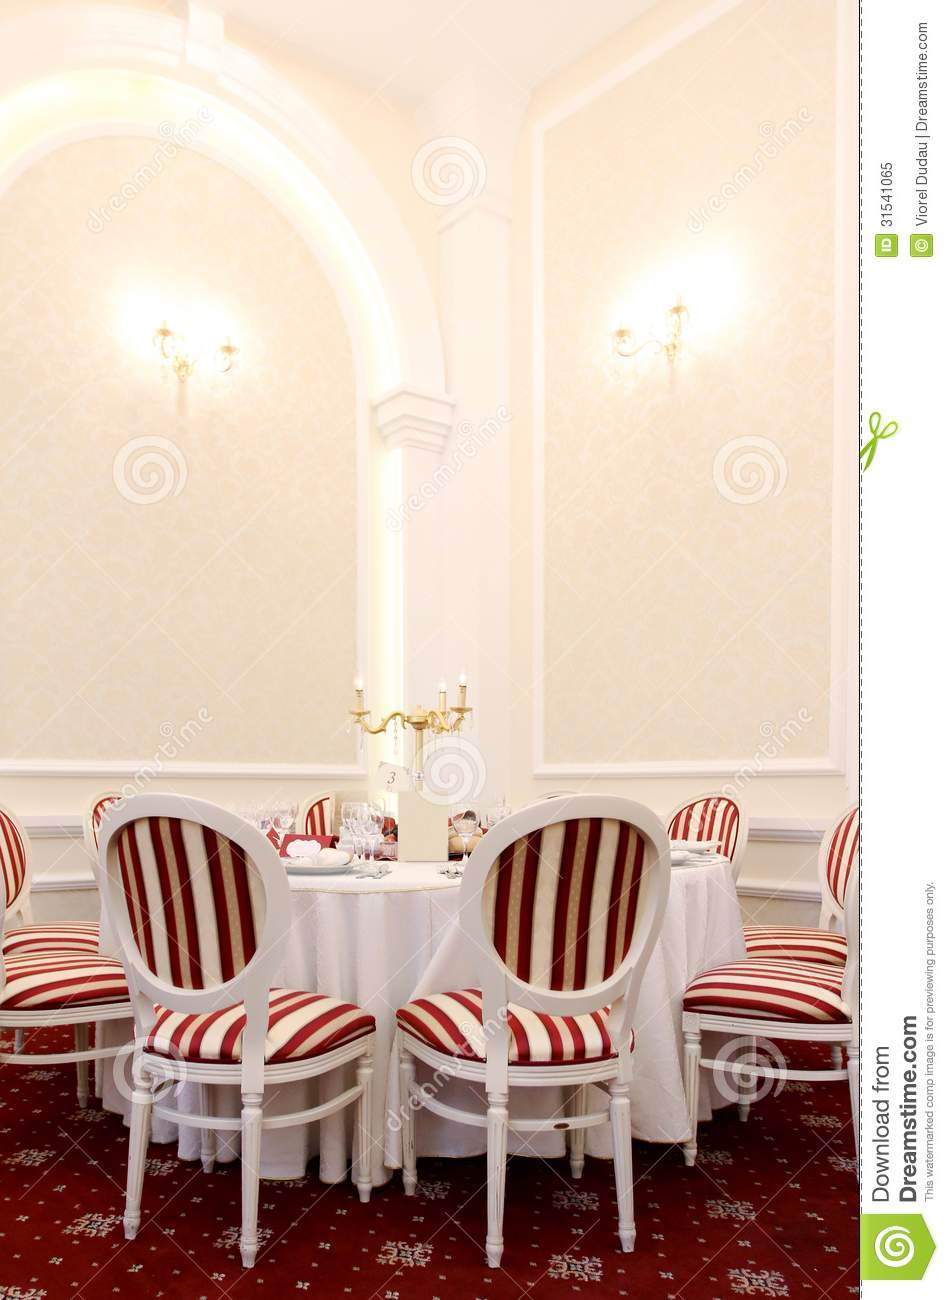 Luxury restaurant table and chairs royalty free stock - Chaise de luxe design ...